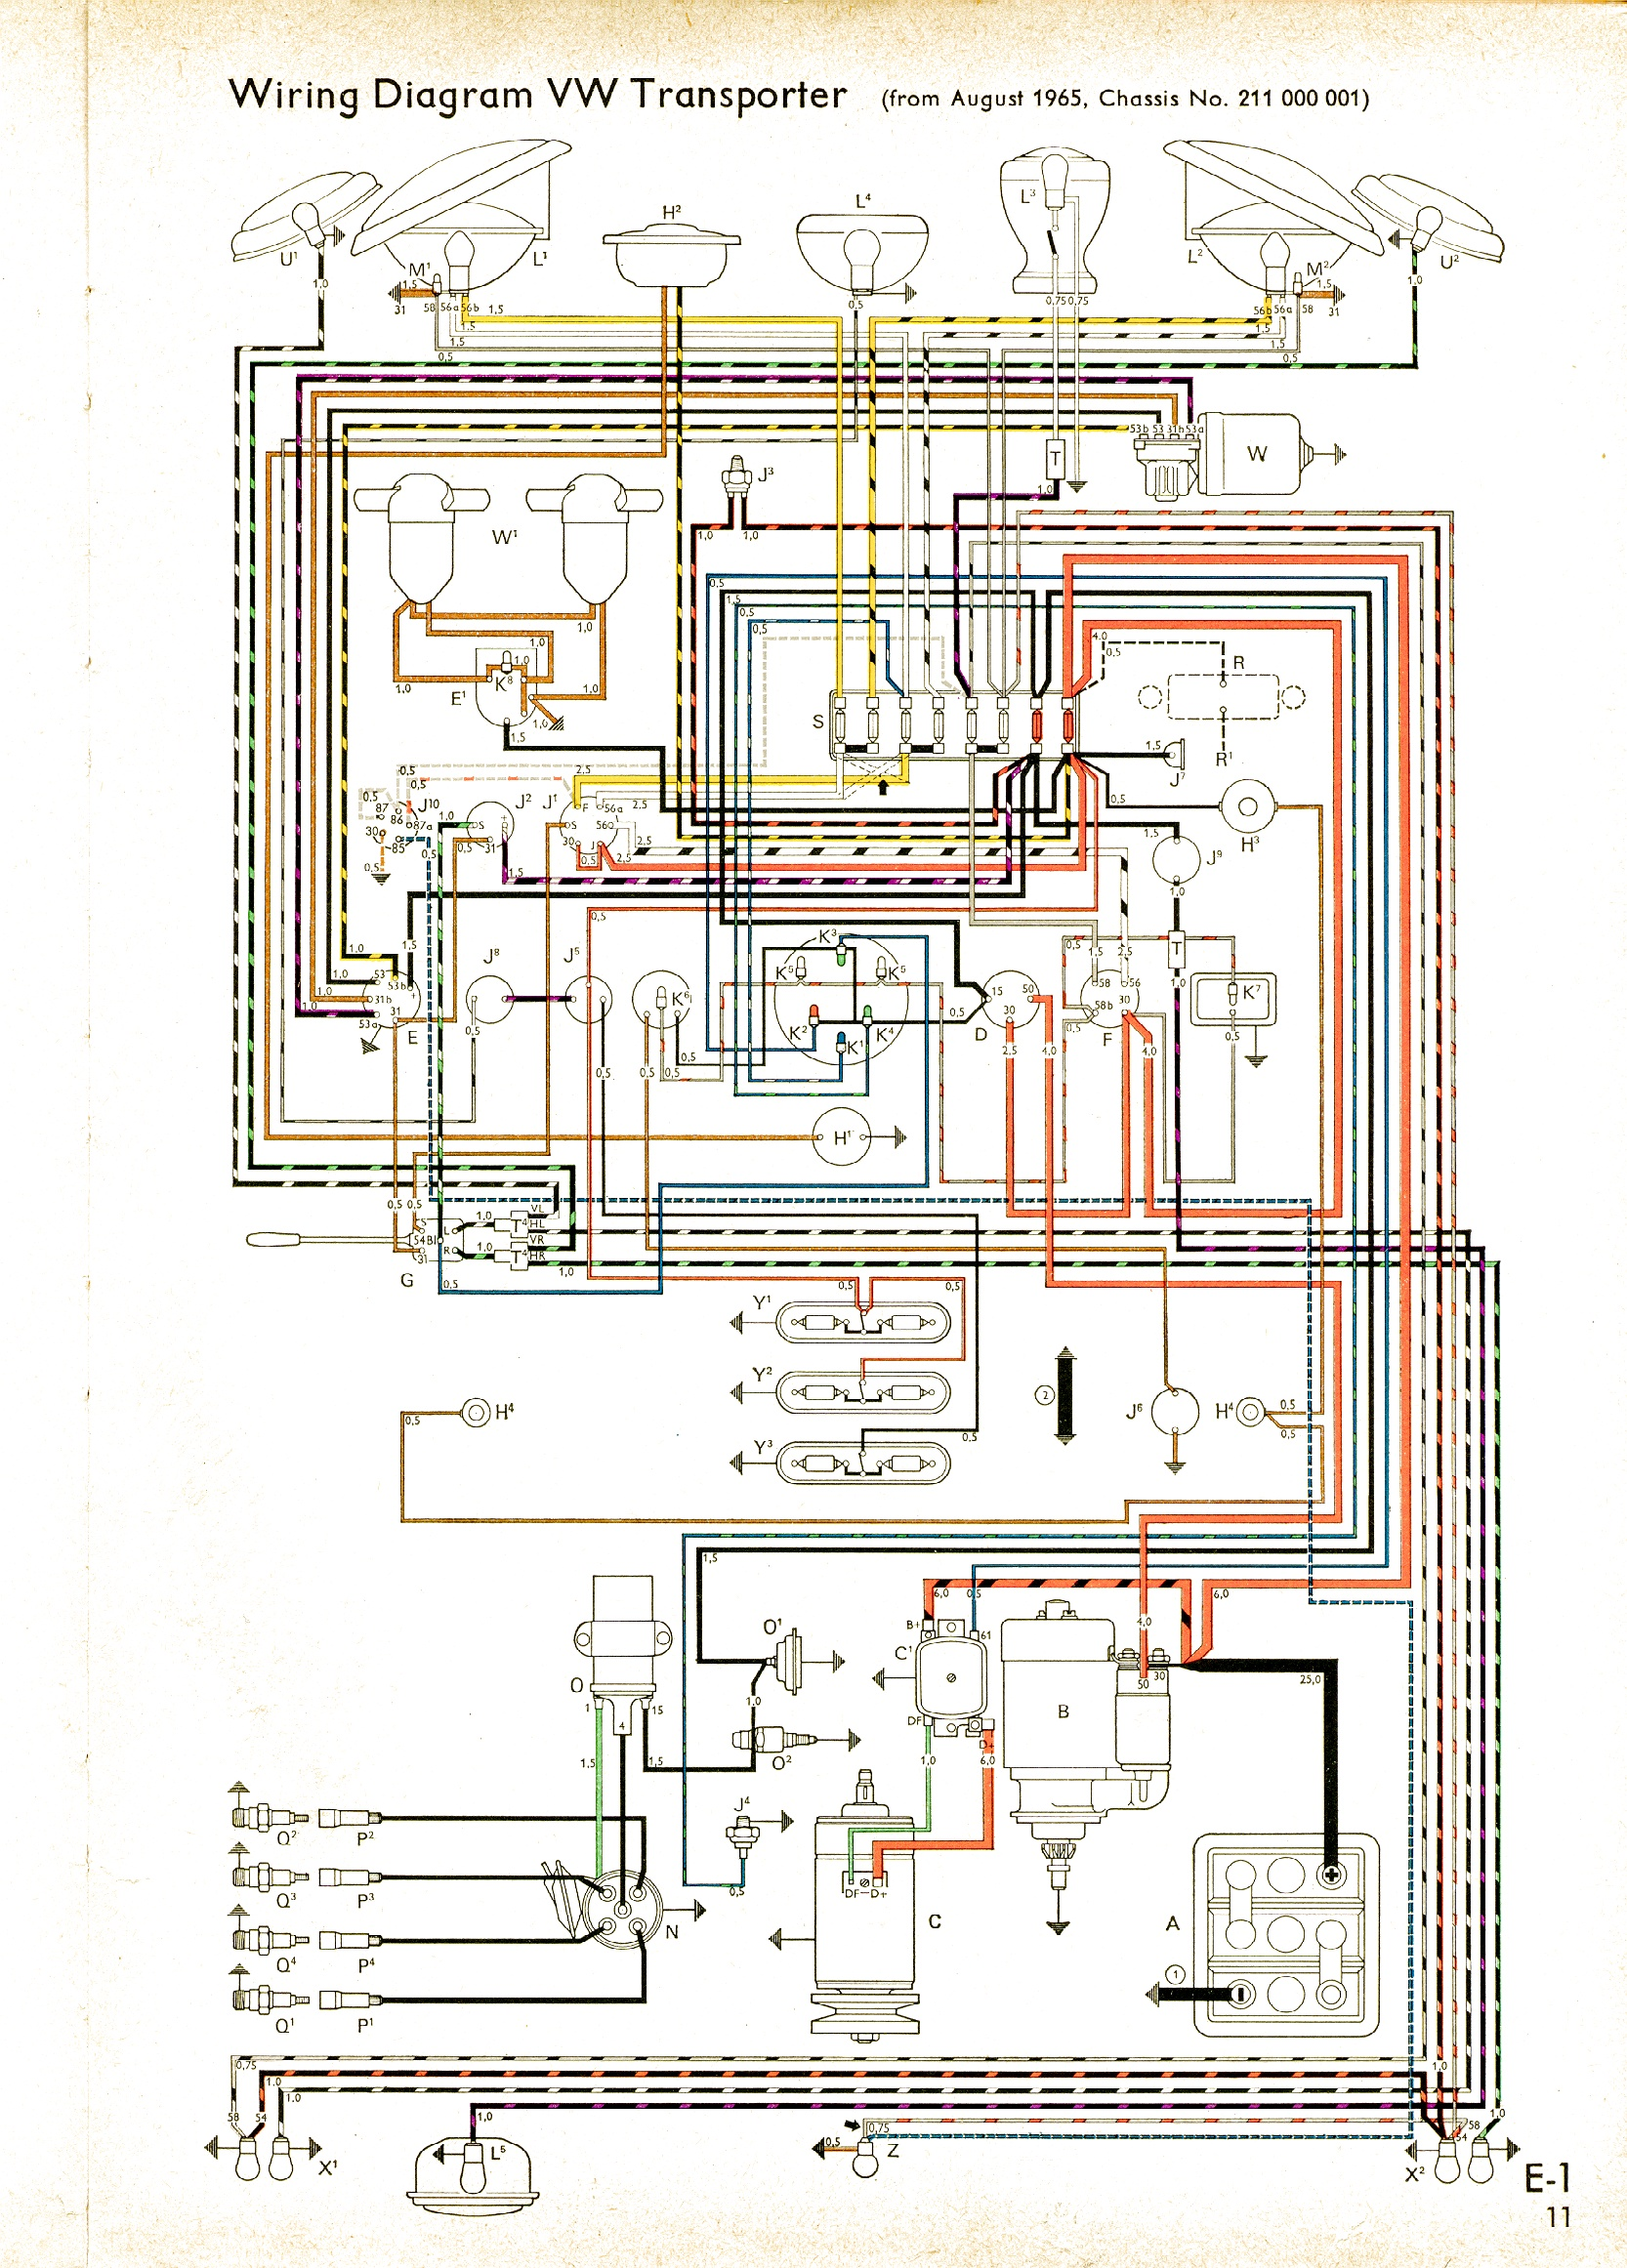 1967 vw beetle wiring diagram RIDAwNe 1967 vw bug wiring diagram on 1967 download wirning diagrams 1970 vw bug wiring diagram at gsmportal.co